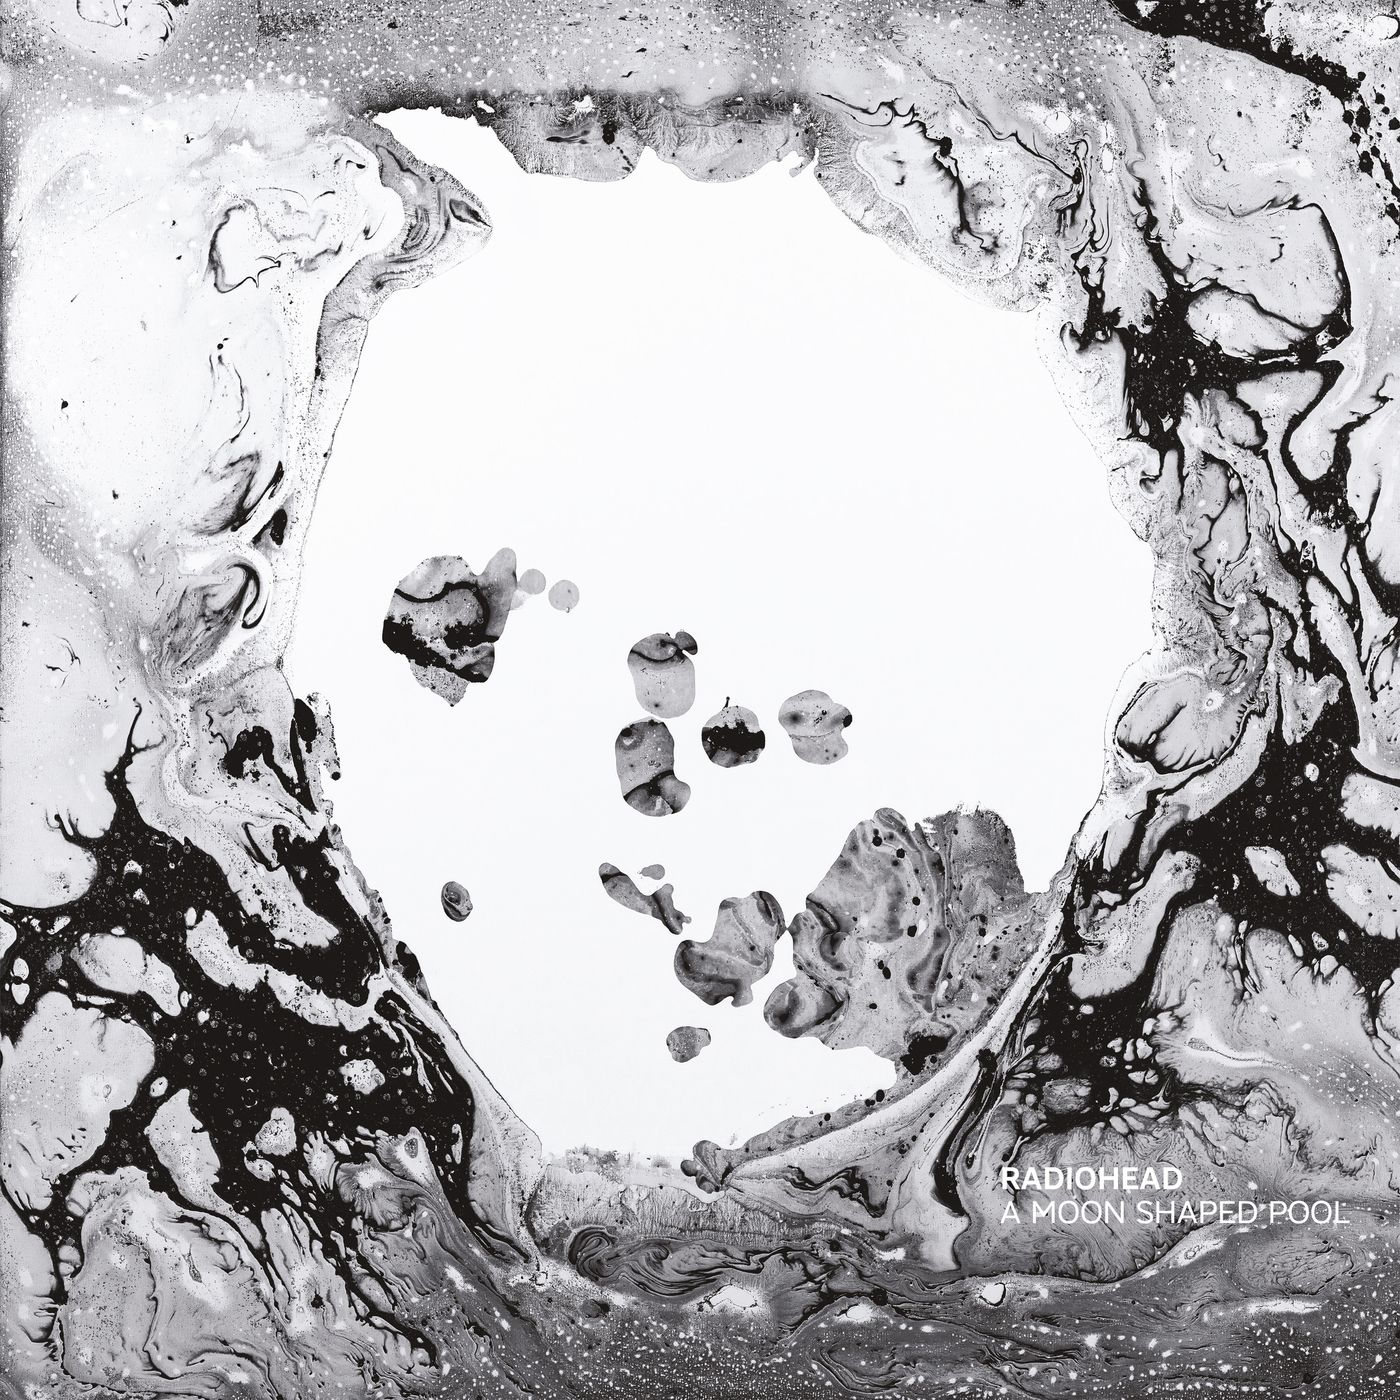 Radiohead - A Moon Shaped Pool album cover